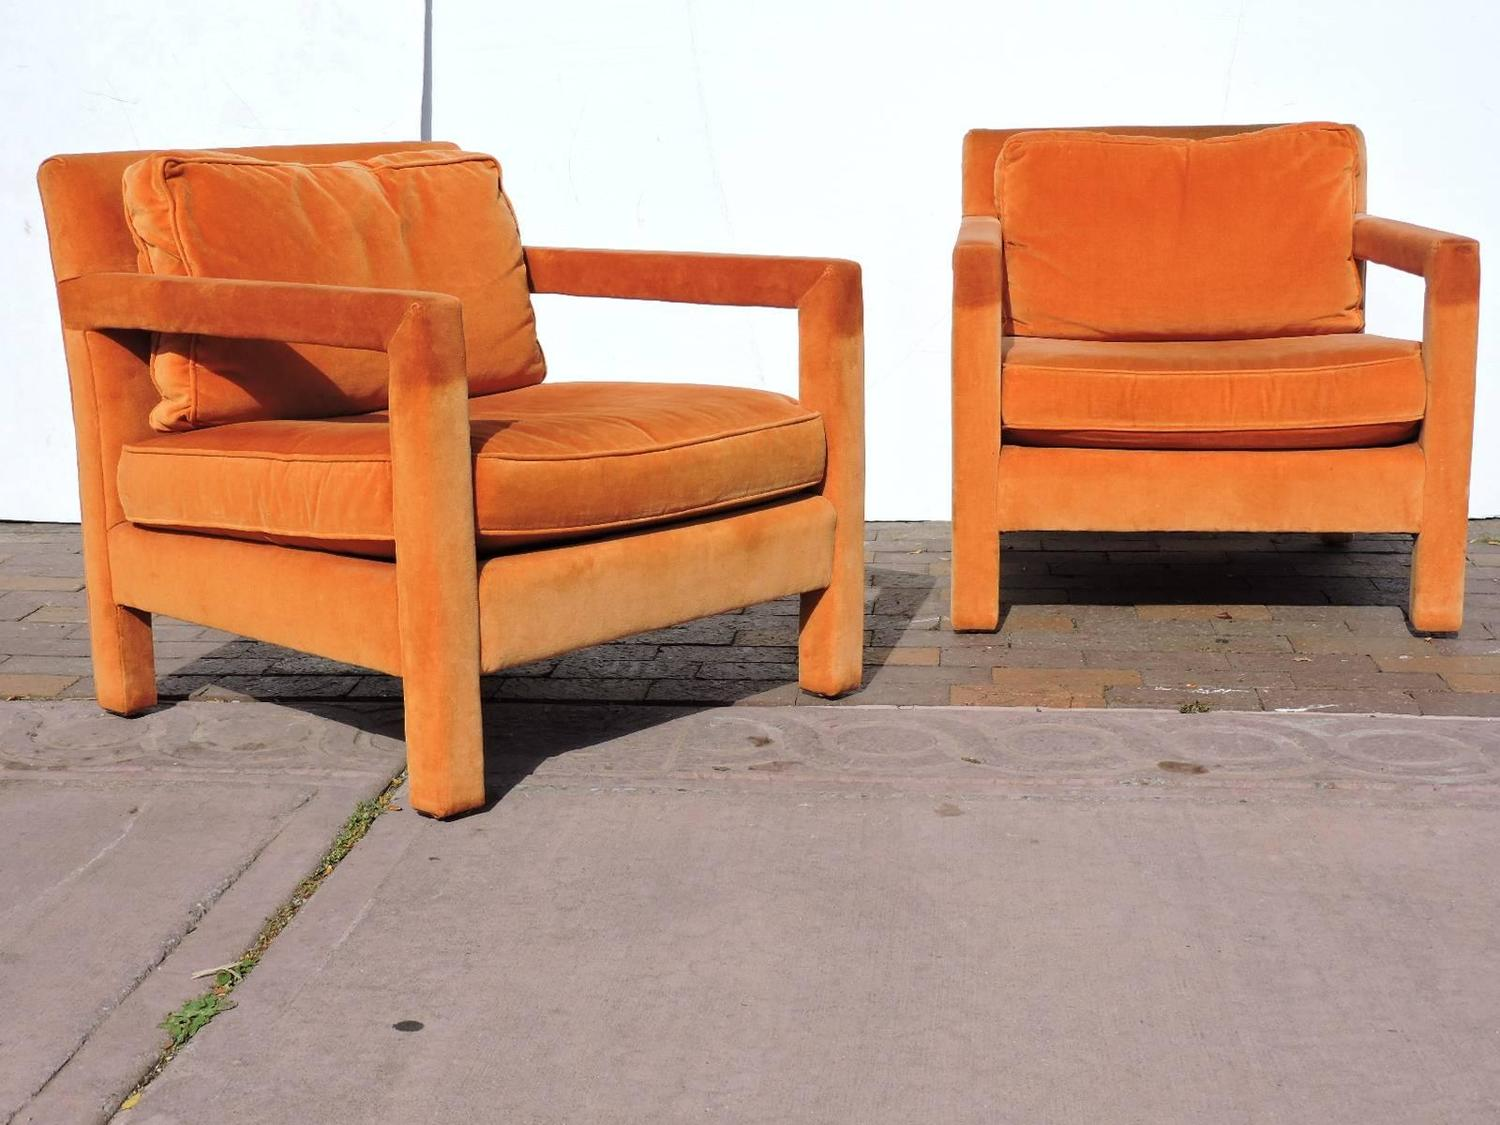 orange parsons chair air accessories upholstered lounge chairs in the style of